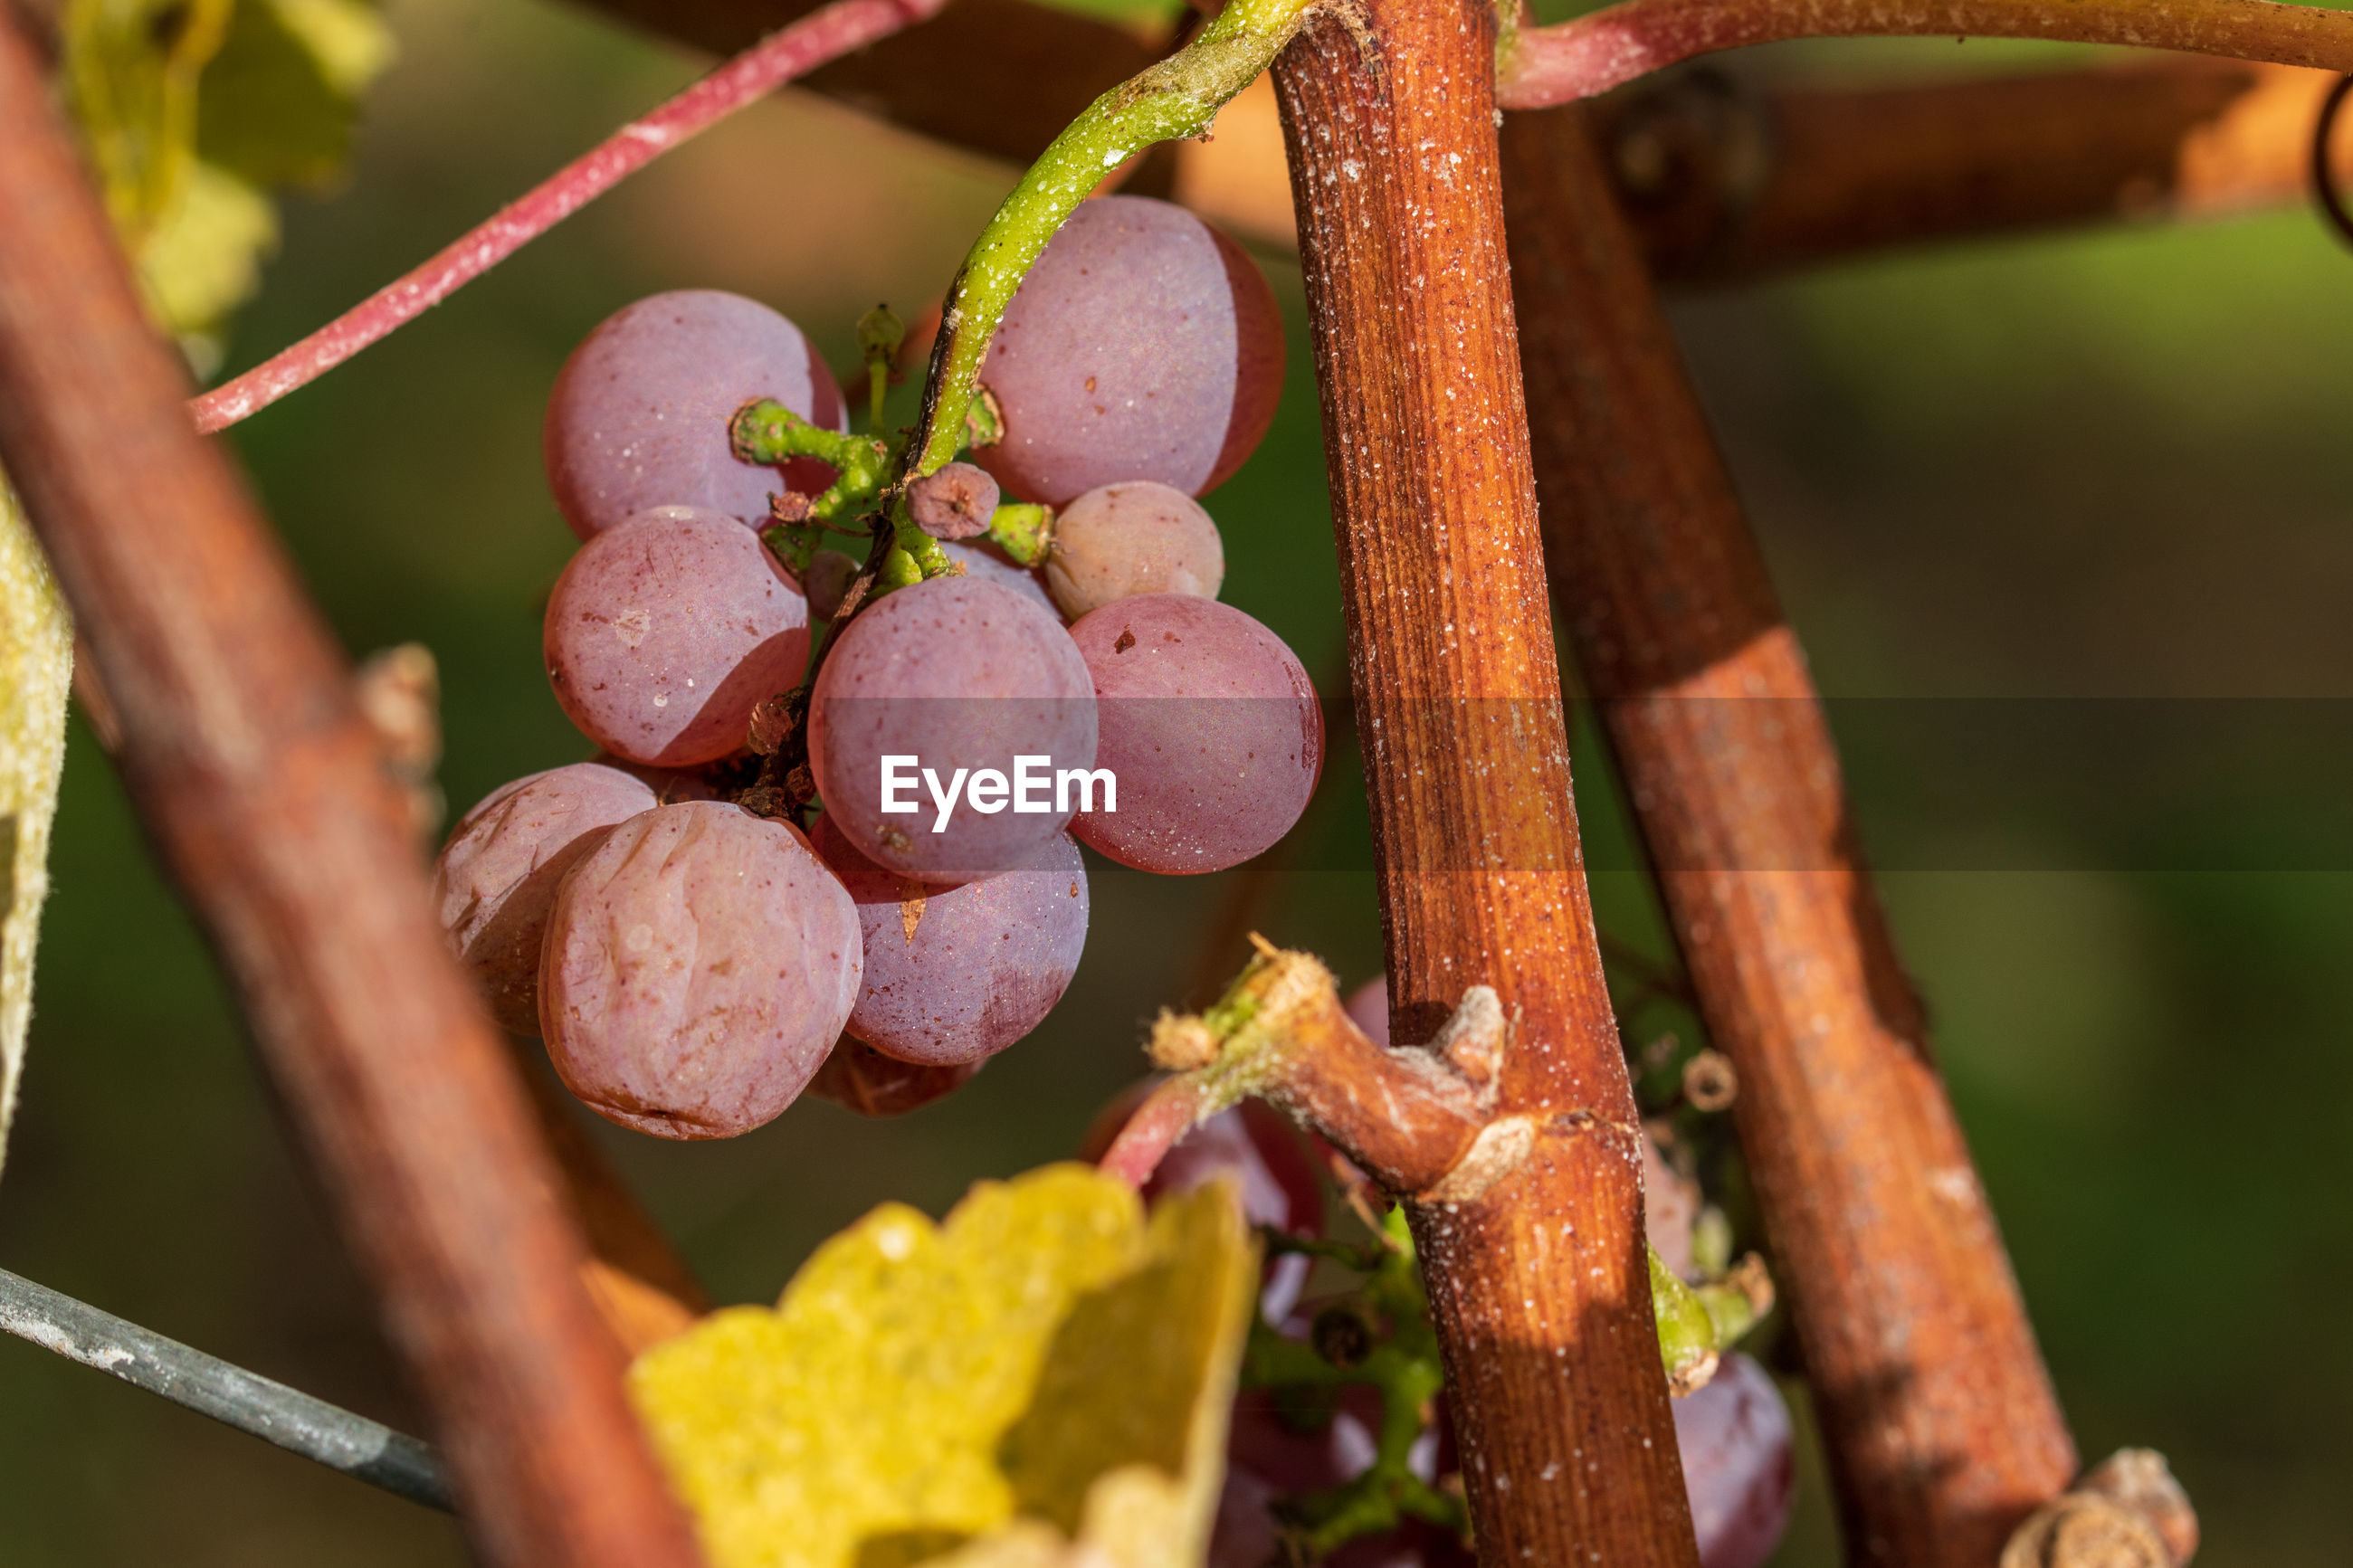 CLOSE-UP OF GRAPES GROWING ON VINEYARD